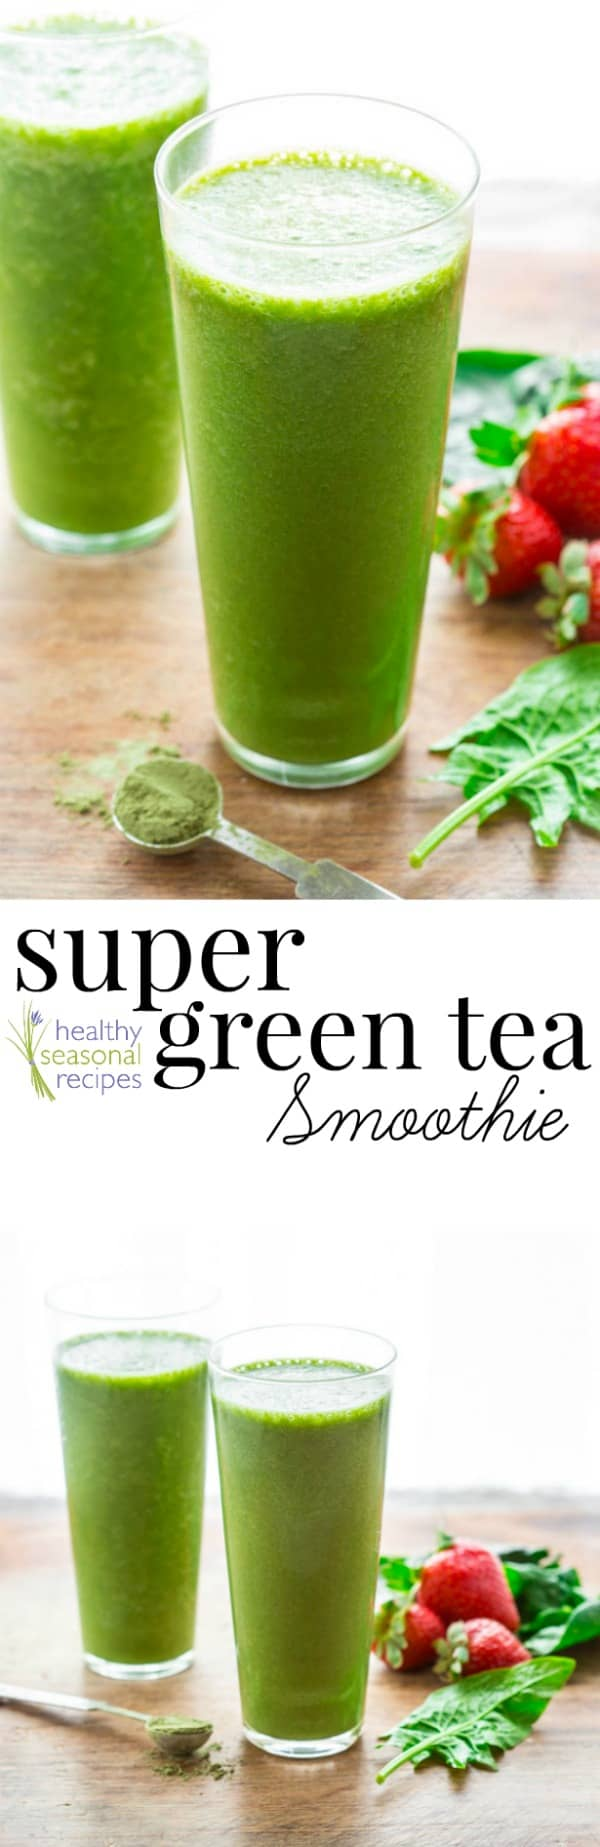 This Super Green Tea Smoothie gets its color from spinach and matcha green tea powder. It's loaded with protein, vitamins and antioxidants! #antioxidant #healthy #smoothie #greentea #matcha #spinach #smoothierecipe #breakfast #protein #breakfastrecipe #vegan #veganrecipe